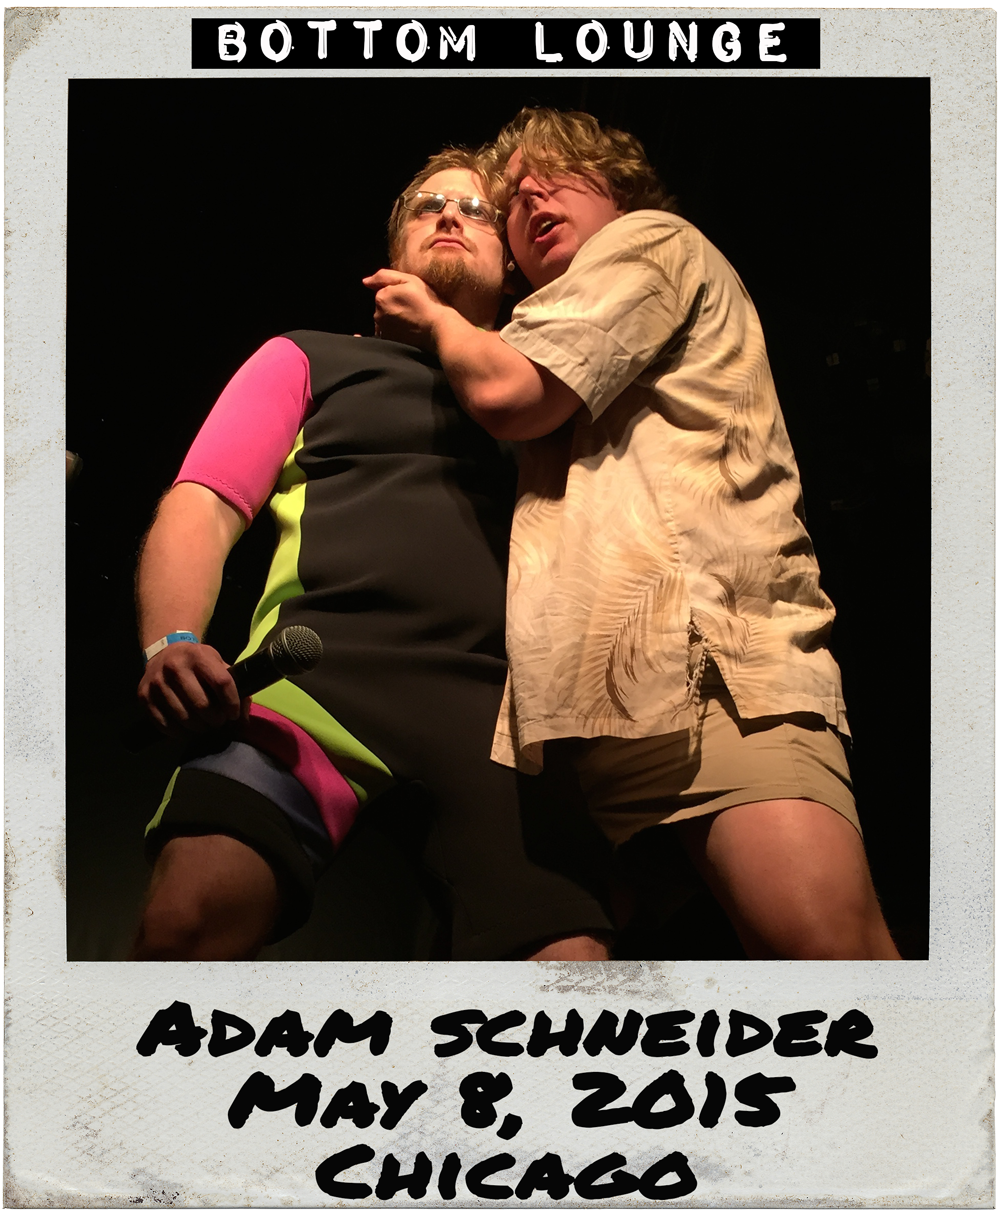 05_08_15_Adam-Schneider_Chicago.png